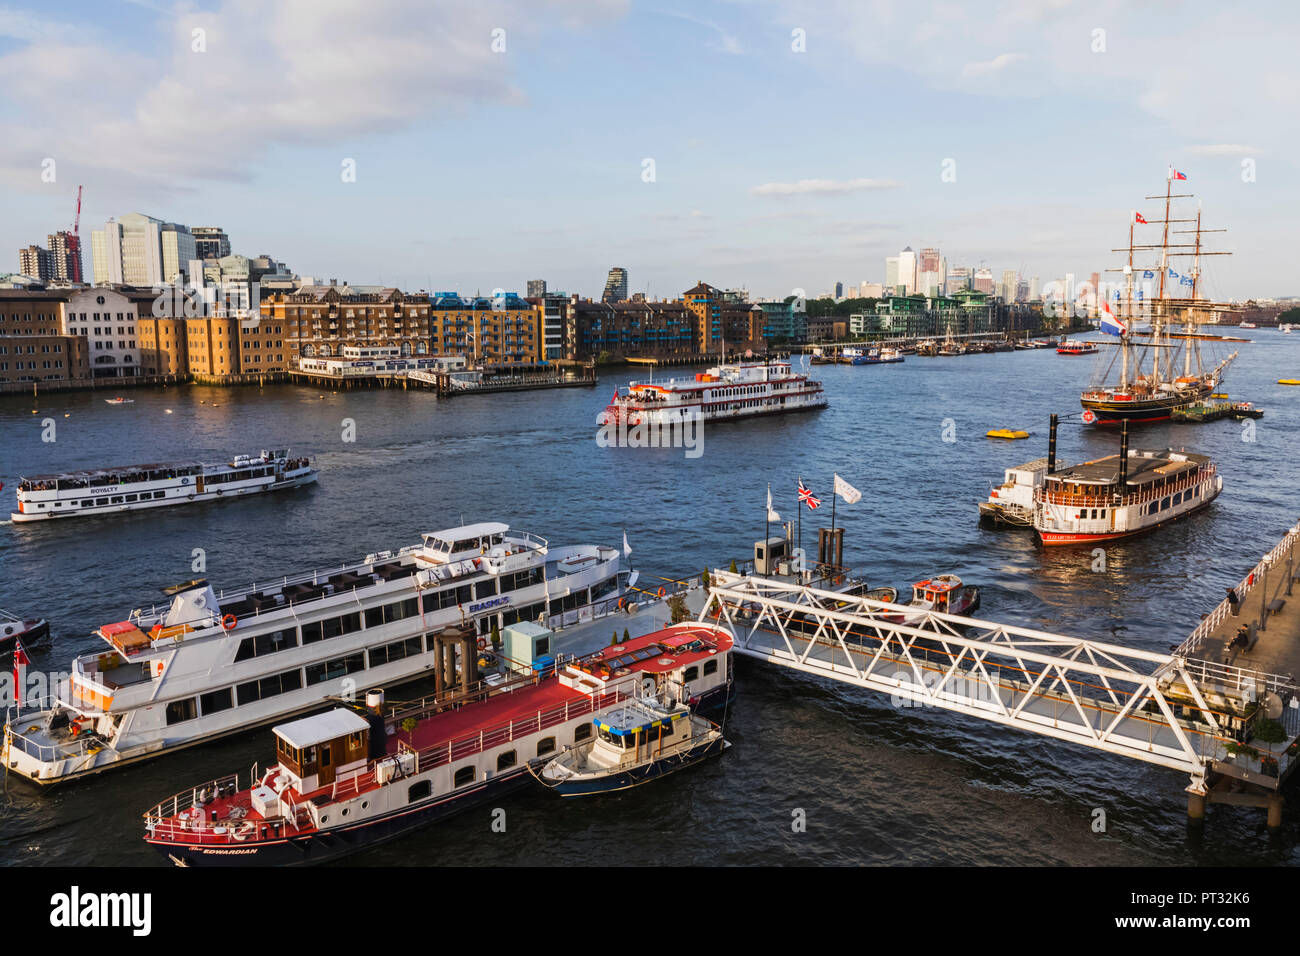 England, London, Docklands and River Thames - Stock Image